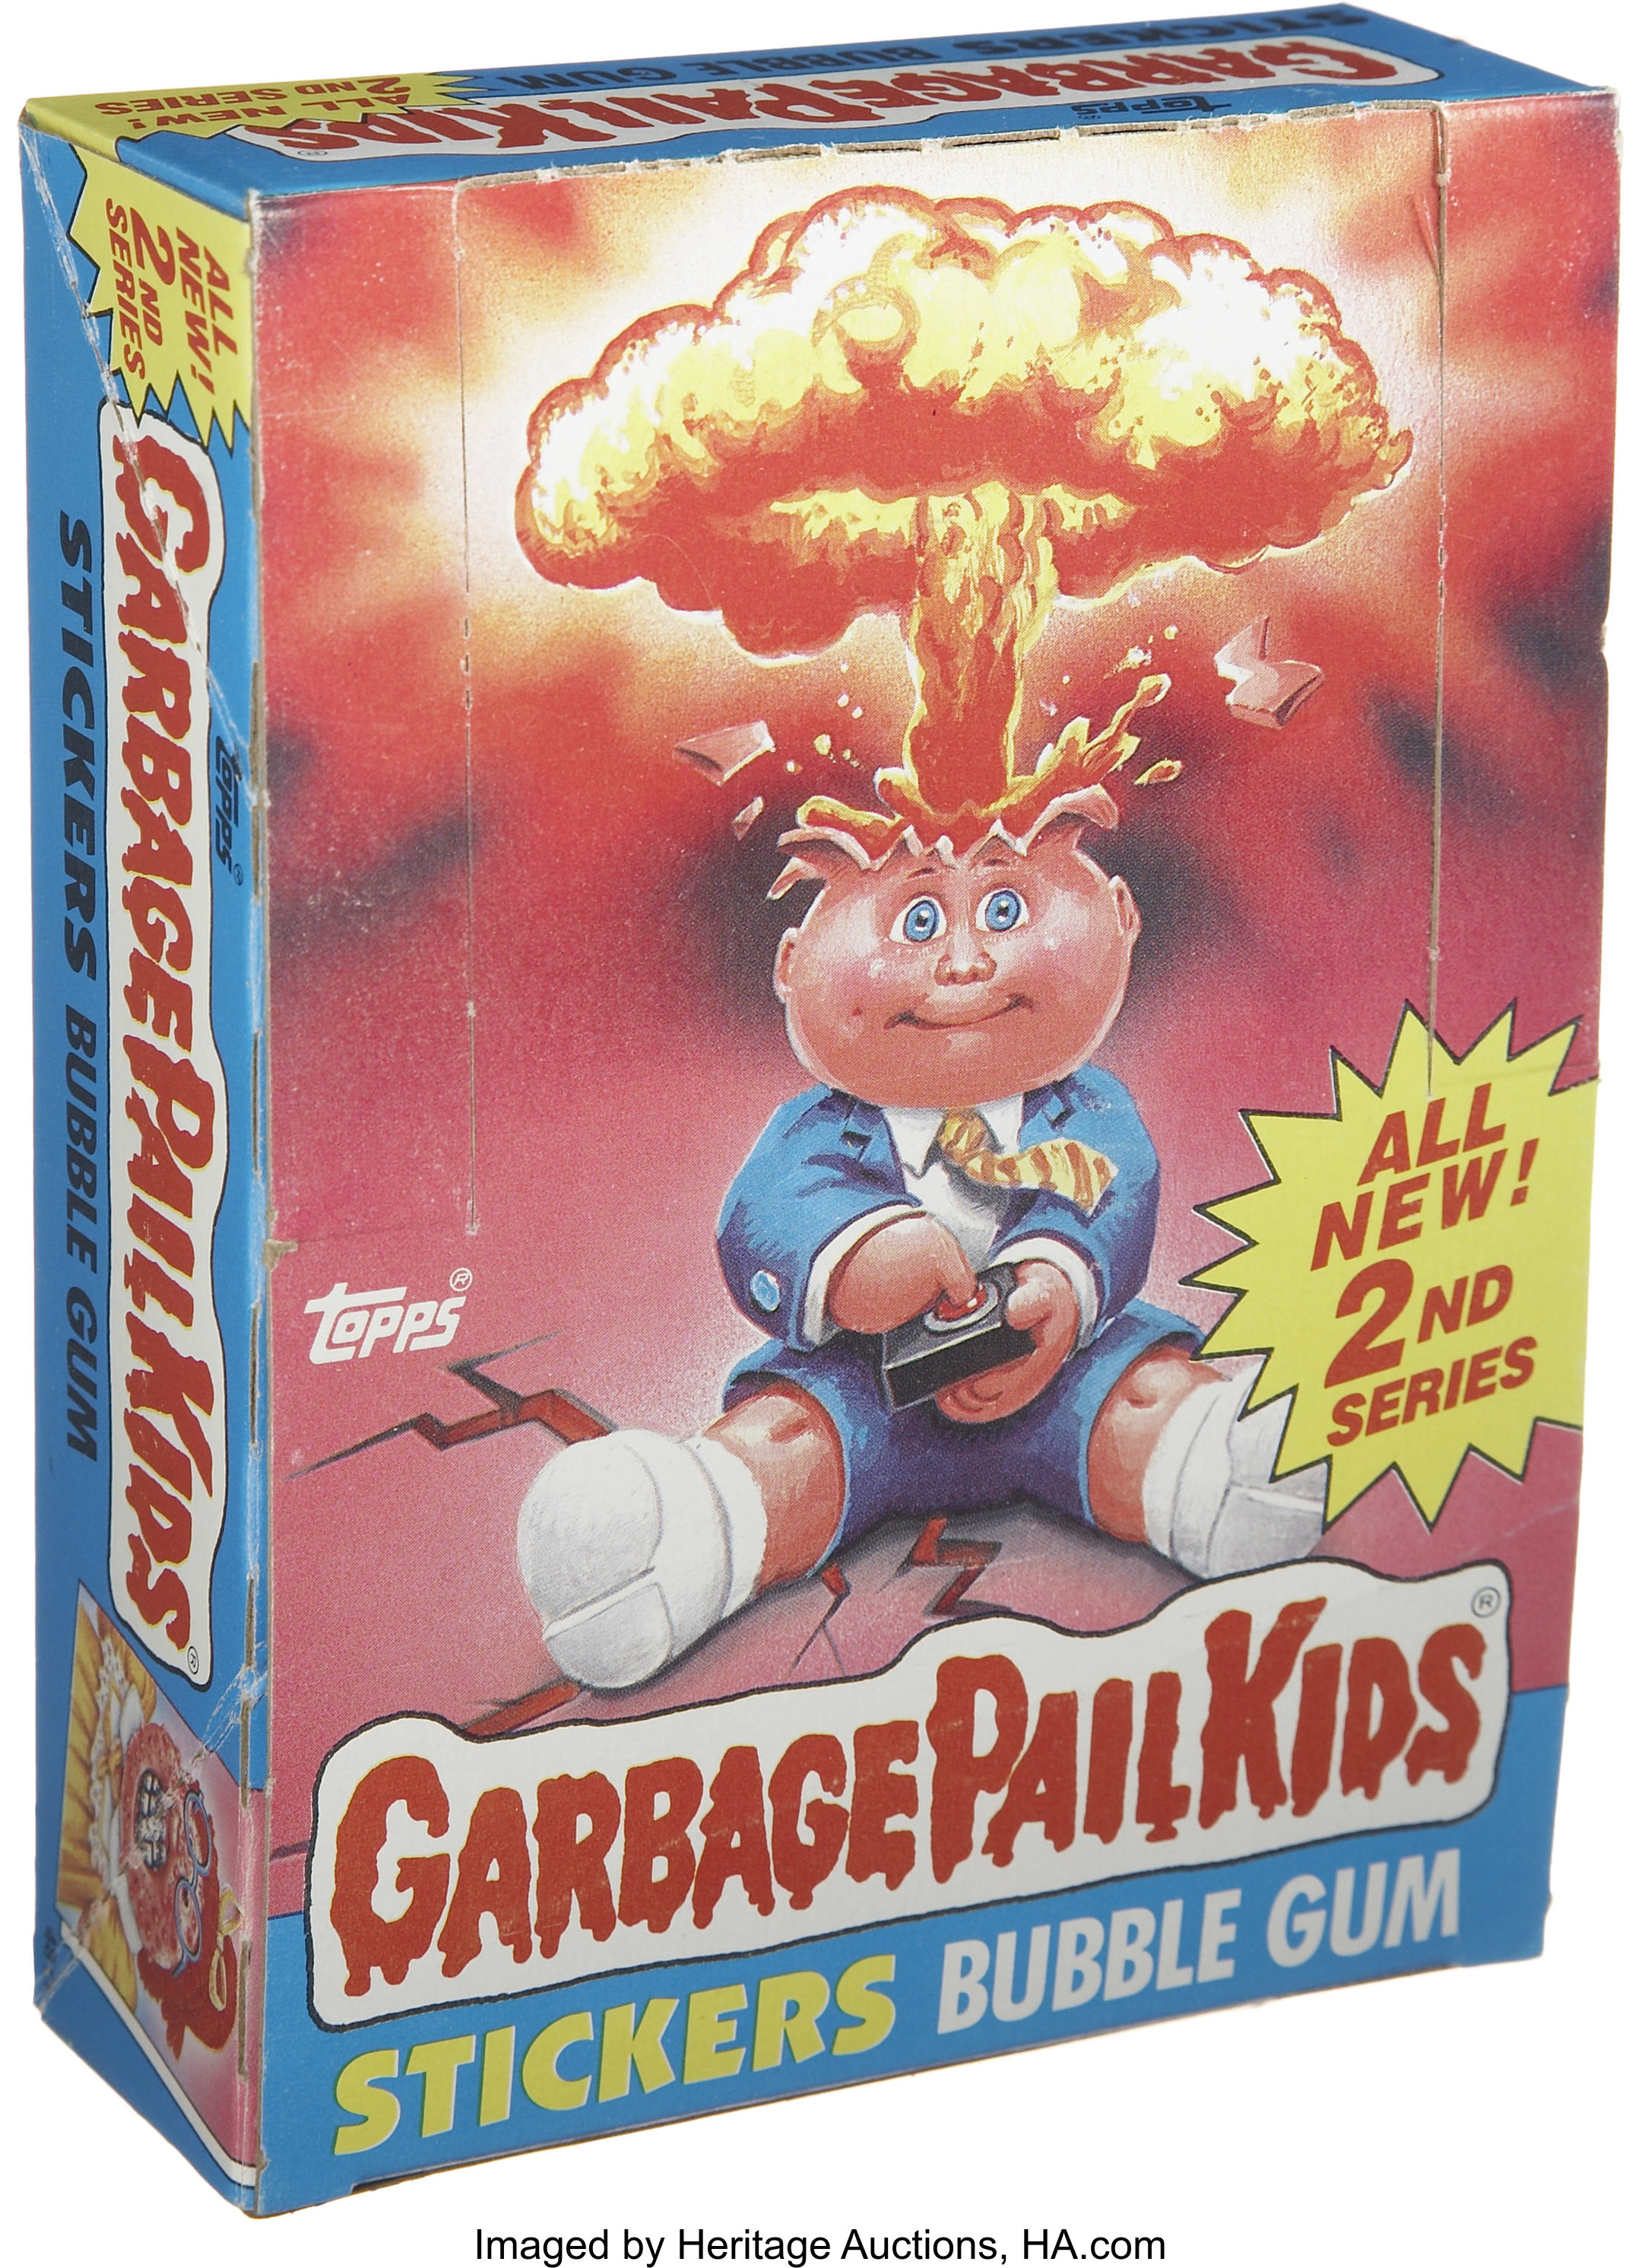 Garbage Pail Kids Series 2 Trading Stickers Wax Pack Box Topps Lot 17549 Heritage Auctions